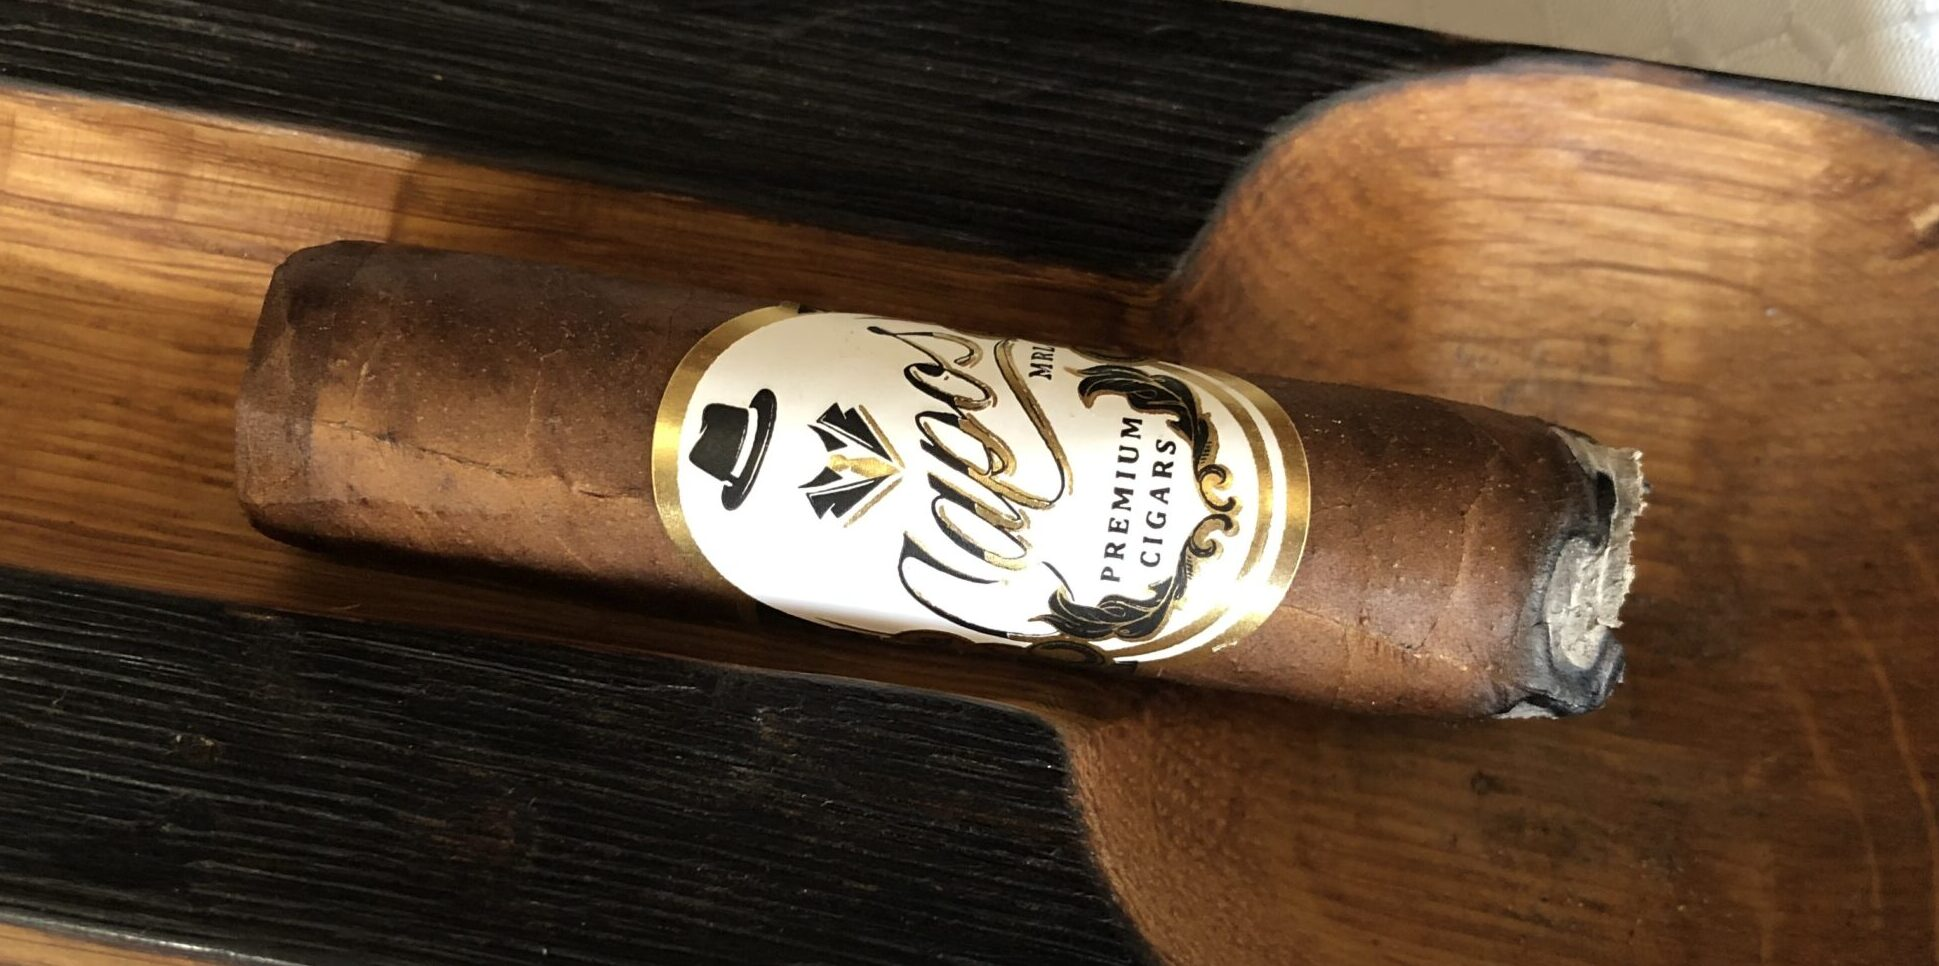 You are currently viewing Capos Cigar MLR Habano Robusto Cigar Review